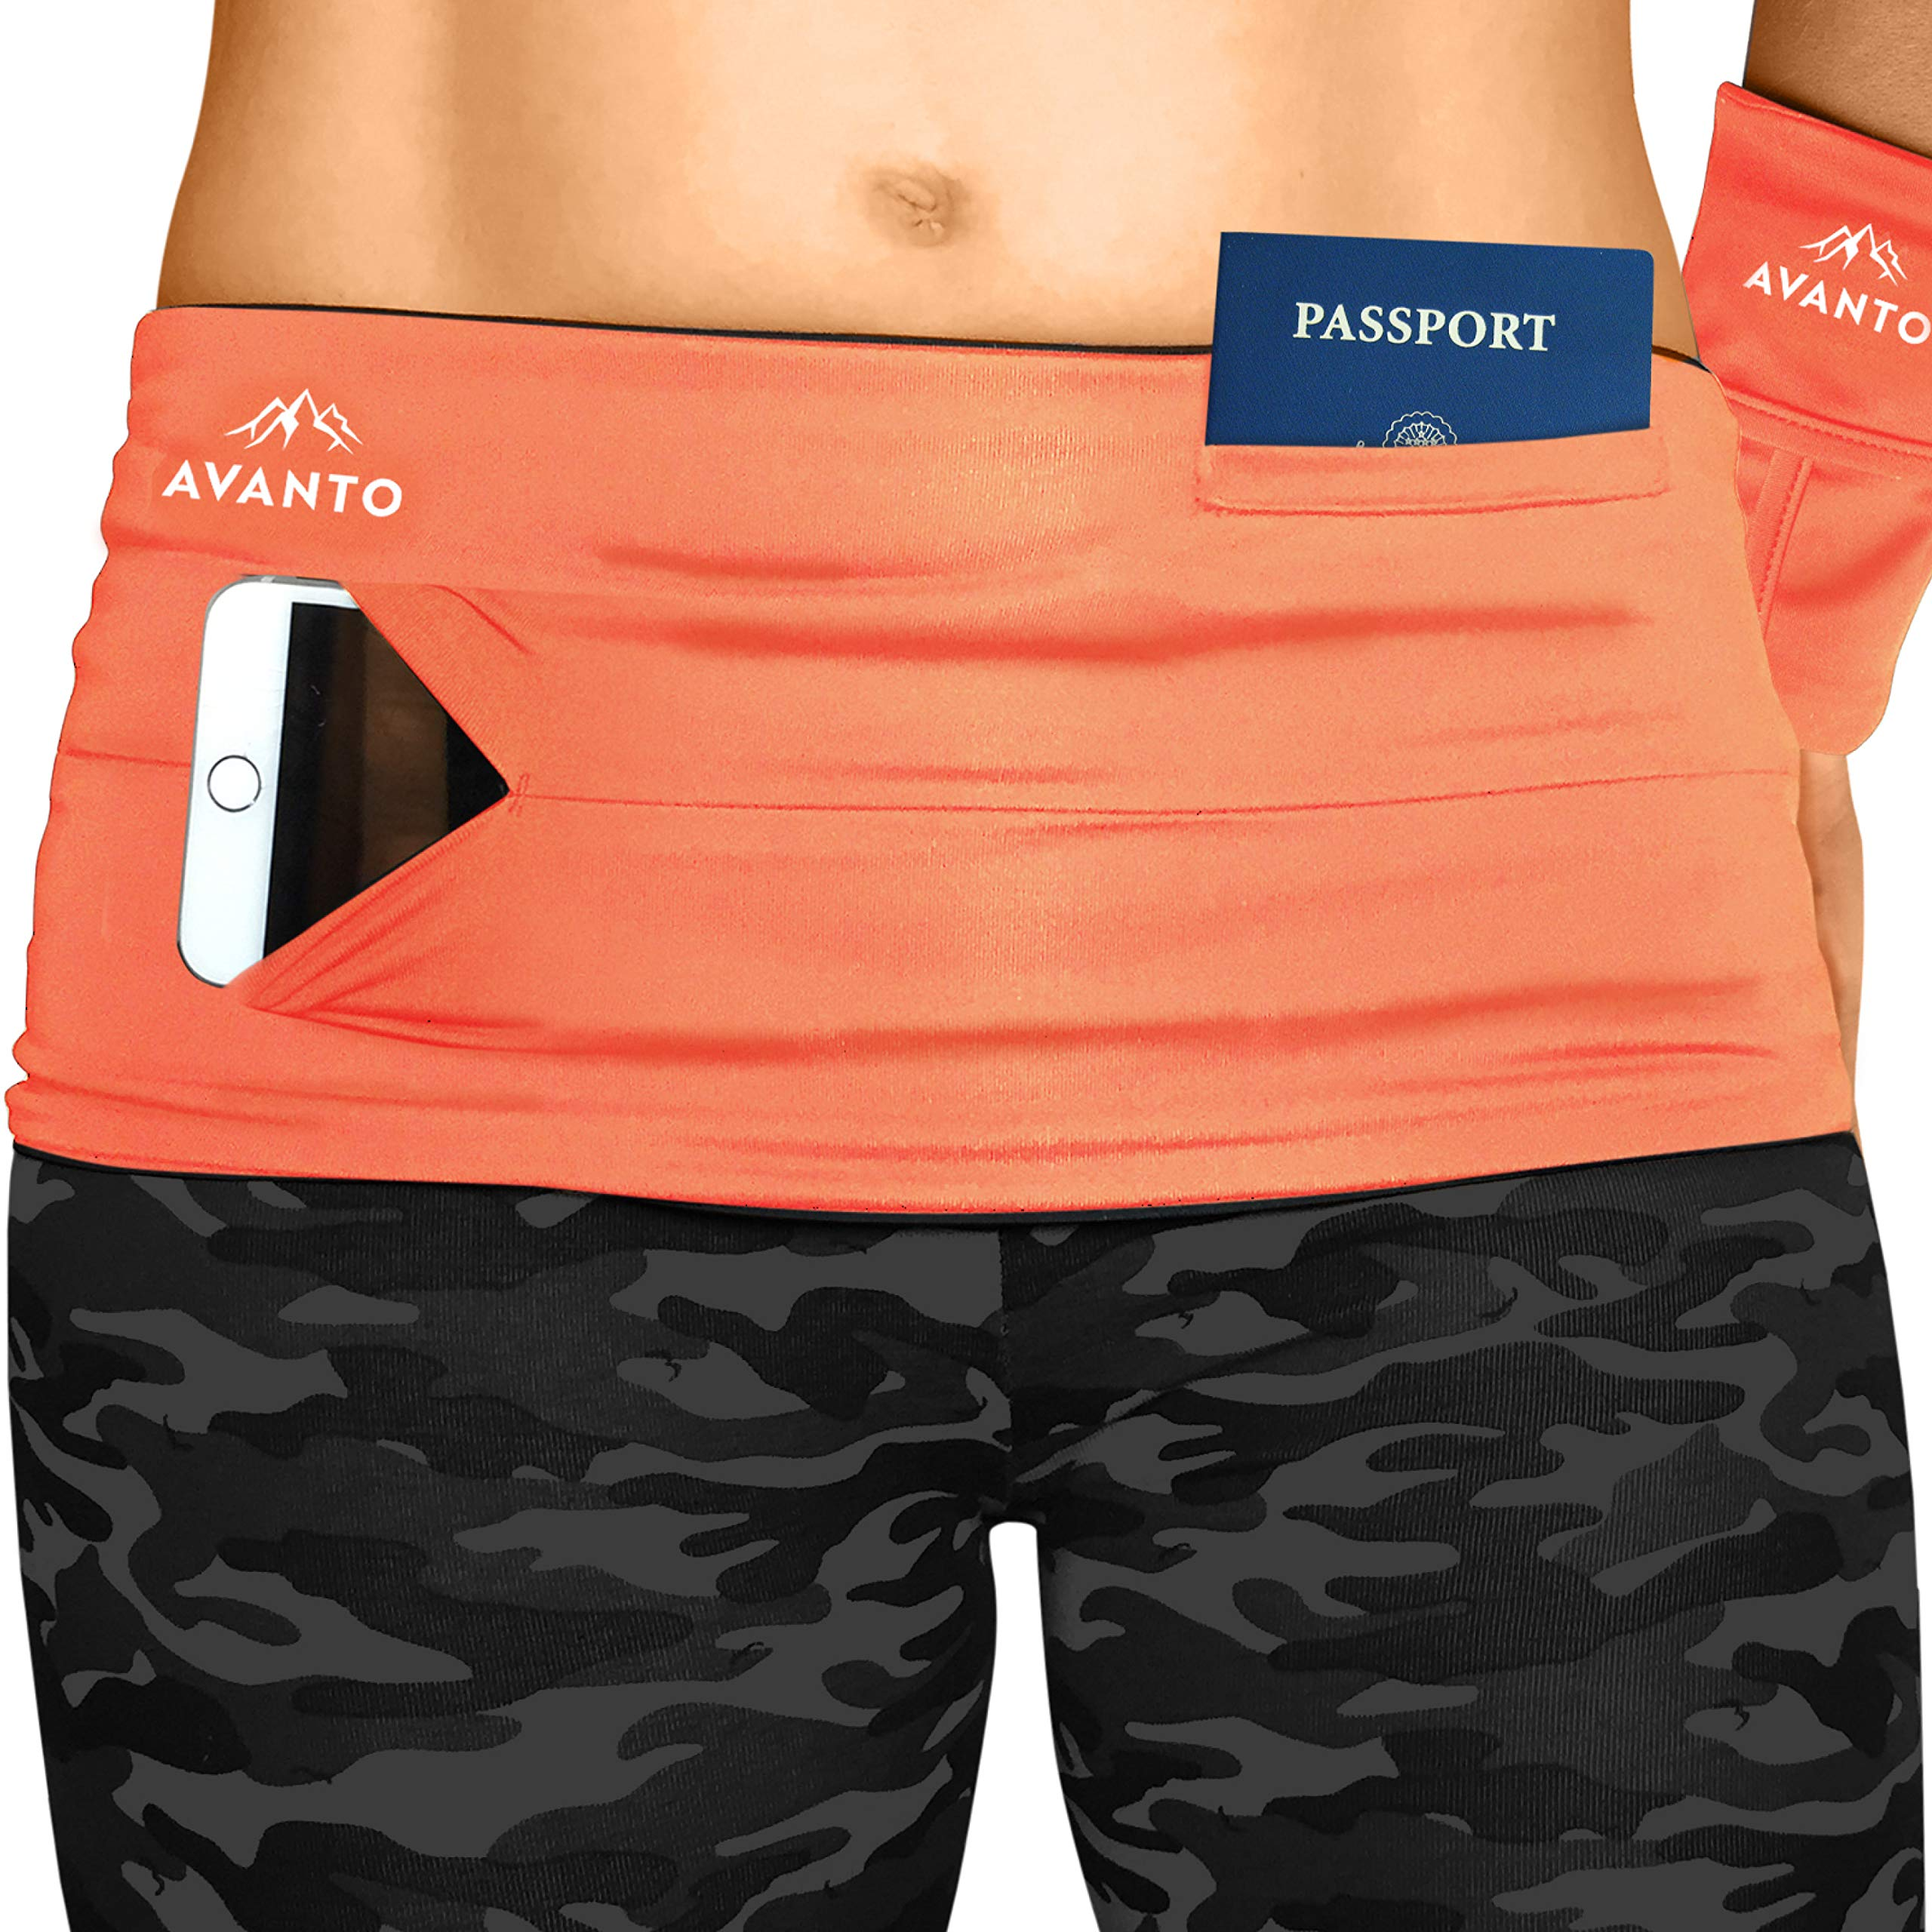 AVANTO Slim Fit Travel Money Belt with Free Wrist Wallet, Running Belt, Waist and Fanny Pack for Travel, for Women and Men, Comfortable Like Second Skin, Orange, XXL by Avanto Lifestyle